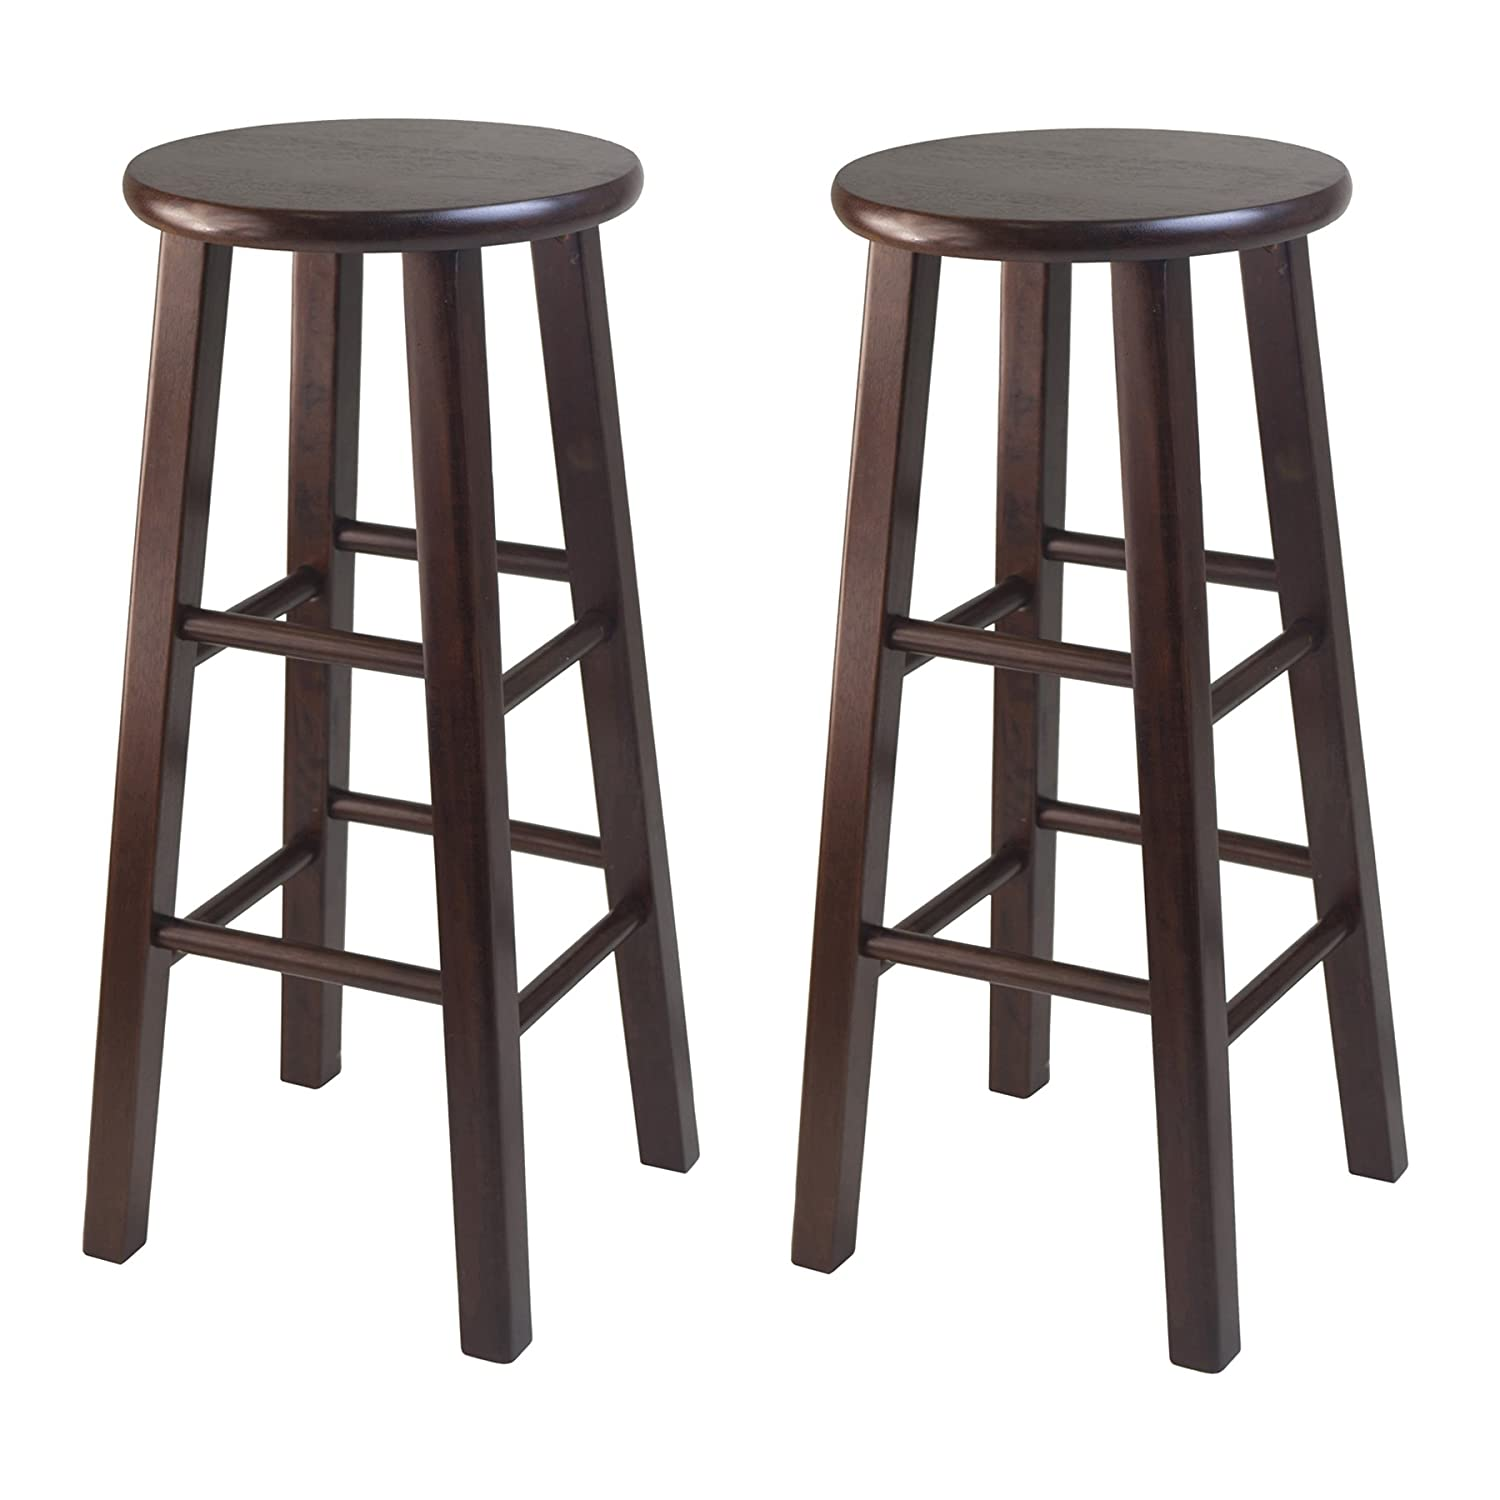 Amazon.com Winsome 29-Inch Square Leg Bar Stool Antique Walnut Set of 2 Kitchen u0026 Dining  sc 1 st  Amazon.com & Amazon.com: Winsome 29-Inch Square Leg Bar Stool Antique Walnut ... islam-shia.org